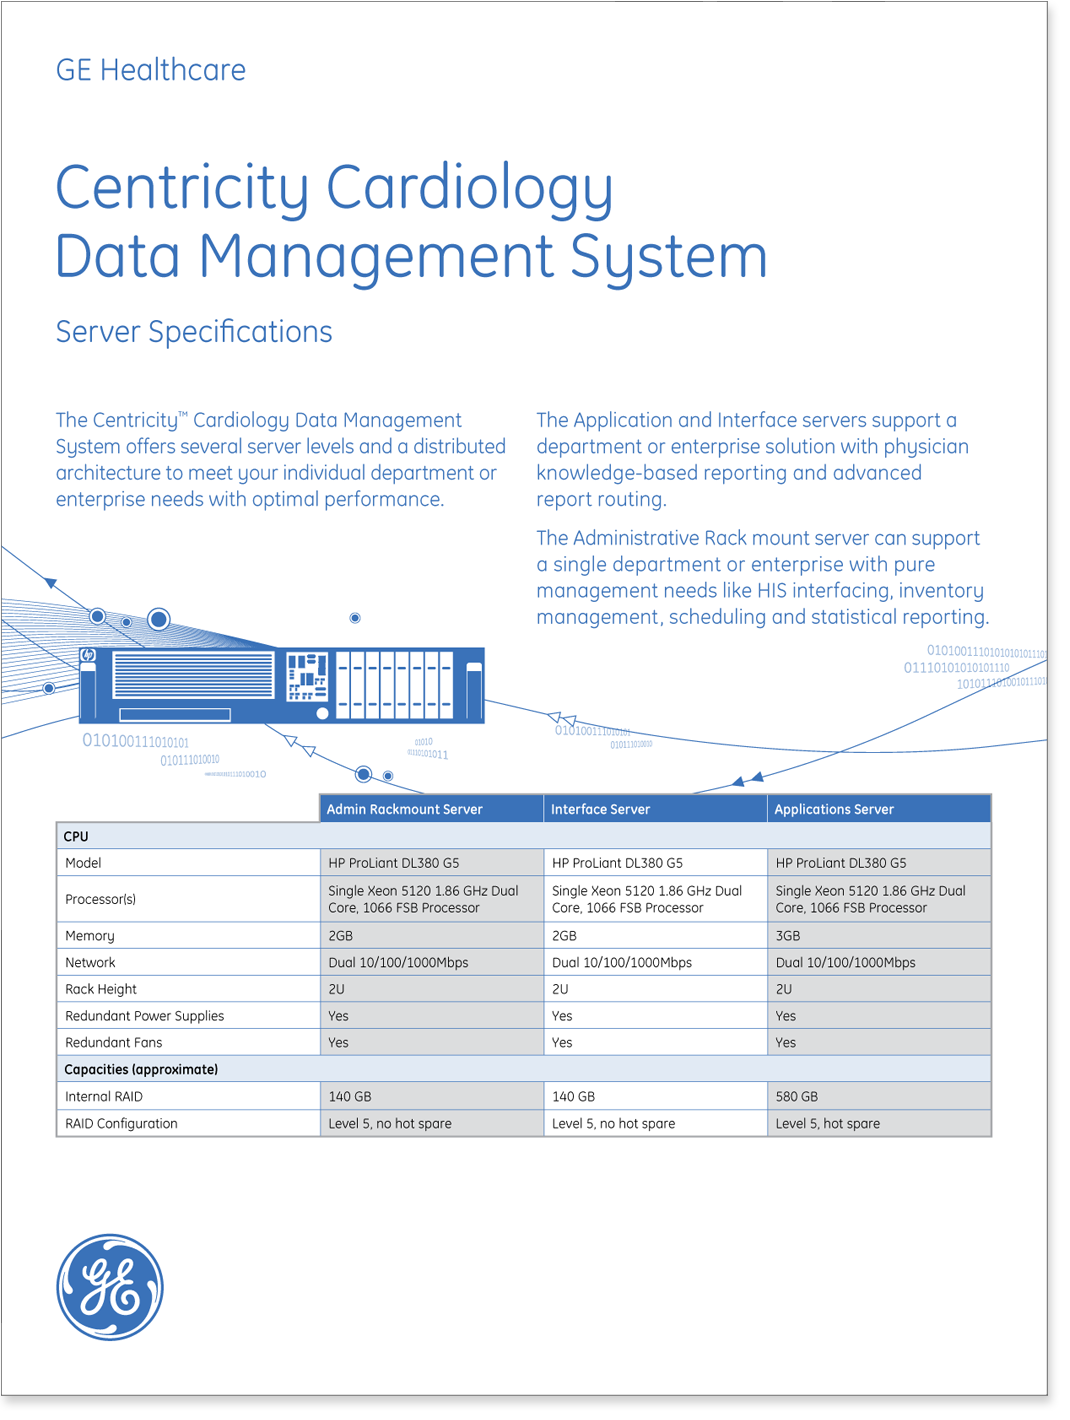 Centricity Cardiology data management system specification sheet